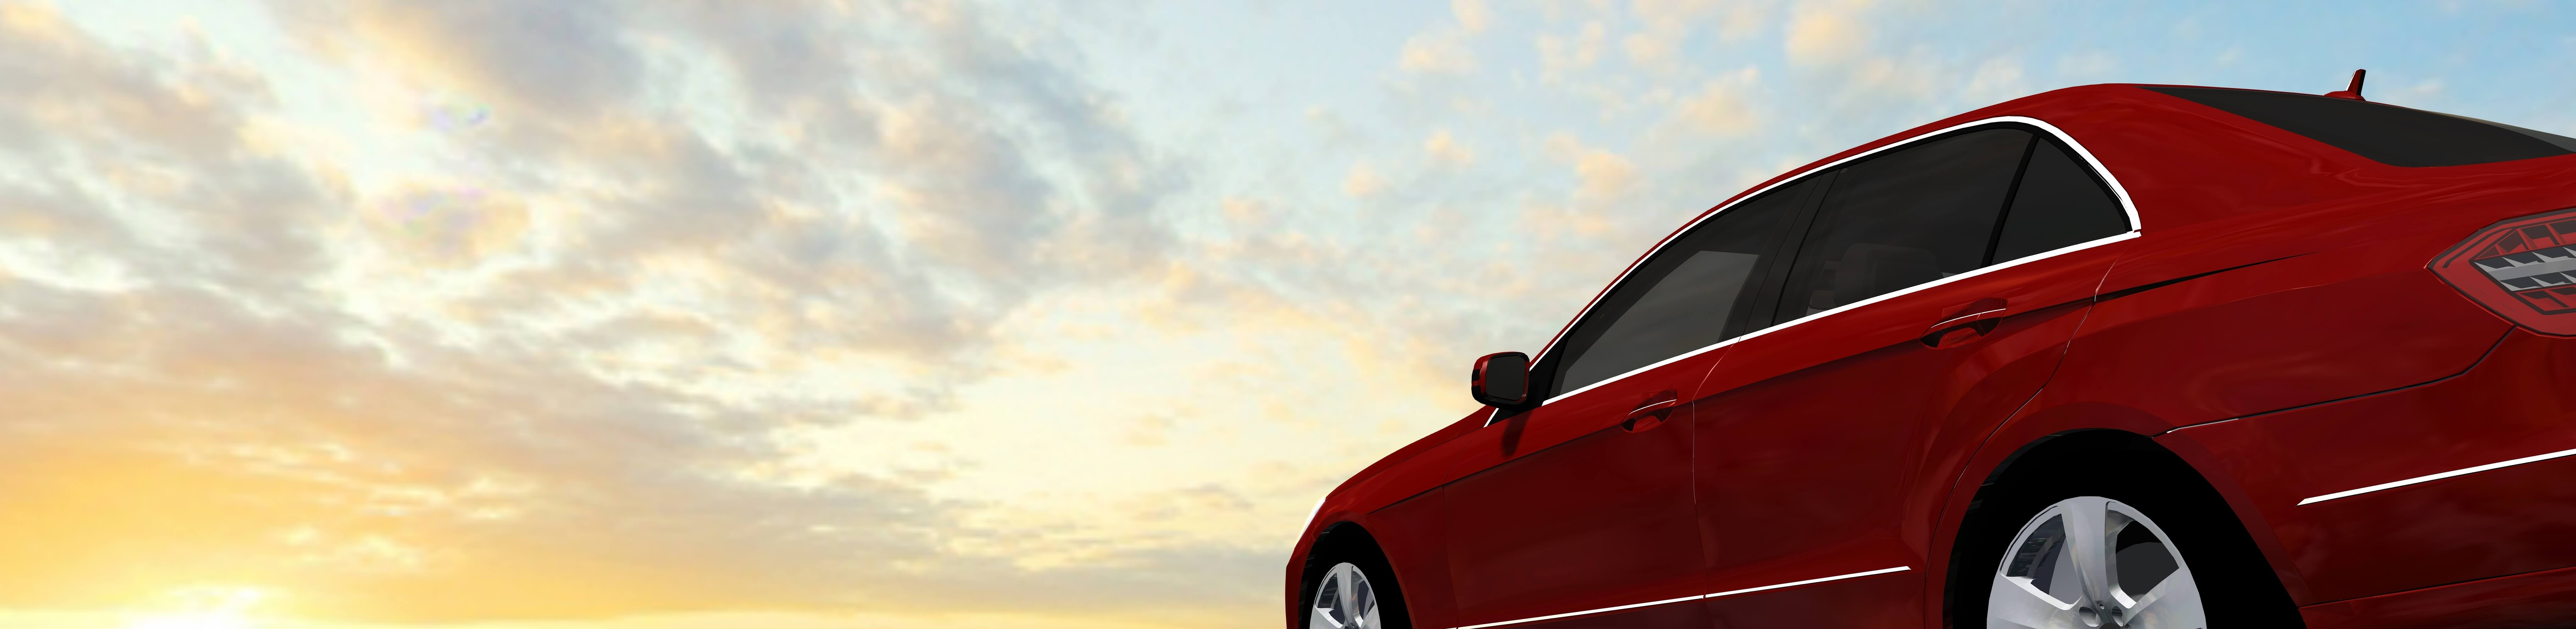 Amica Auto Insurance Reviews >> Auto Insurance Reviews - Rates for Insurance